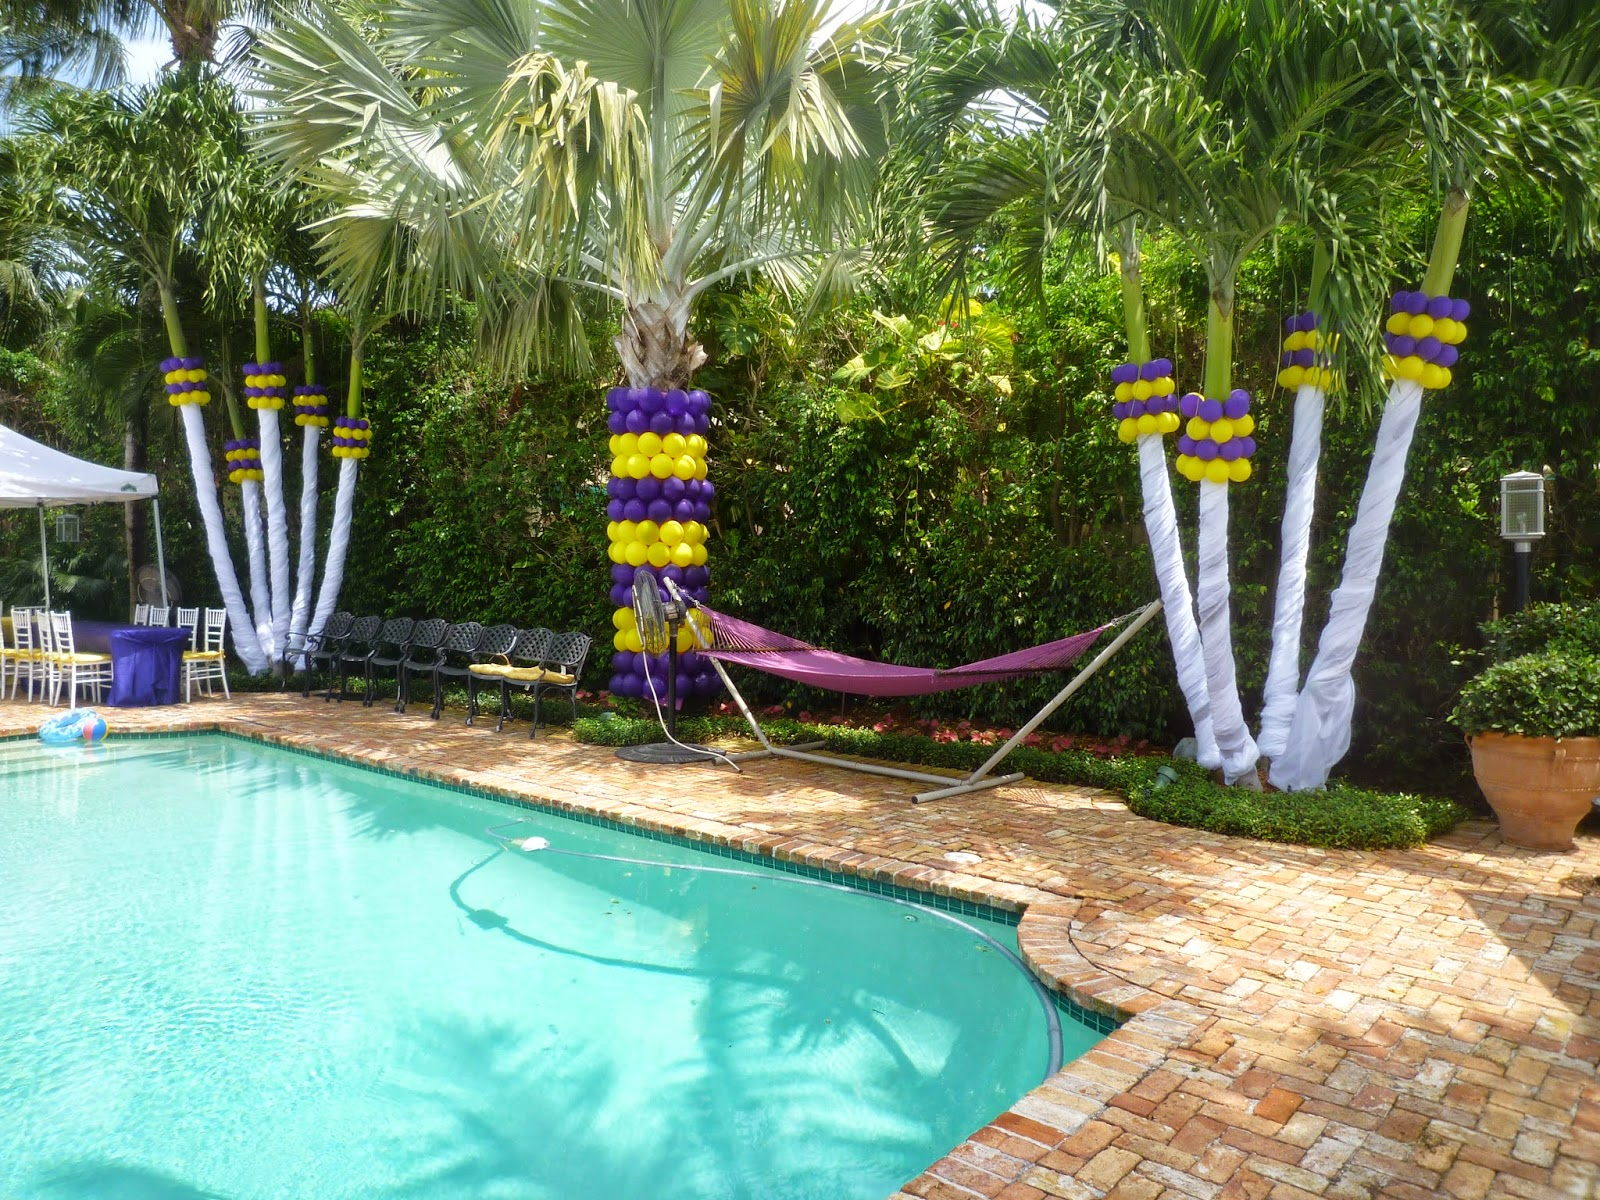 Kids party swimming pool decoration on backyard